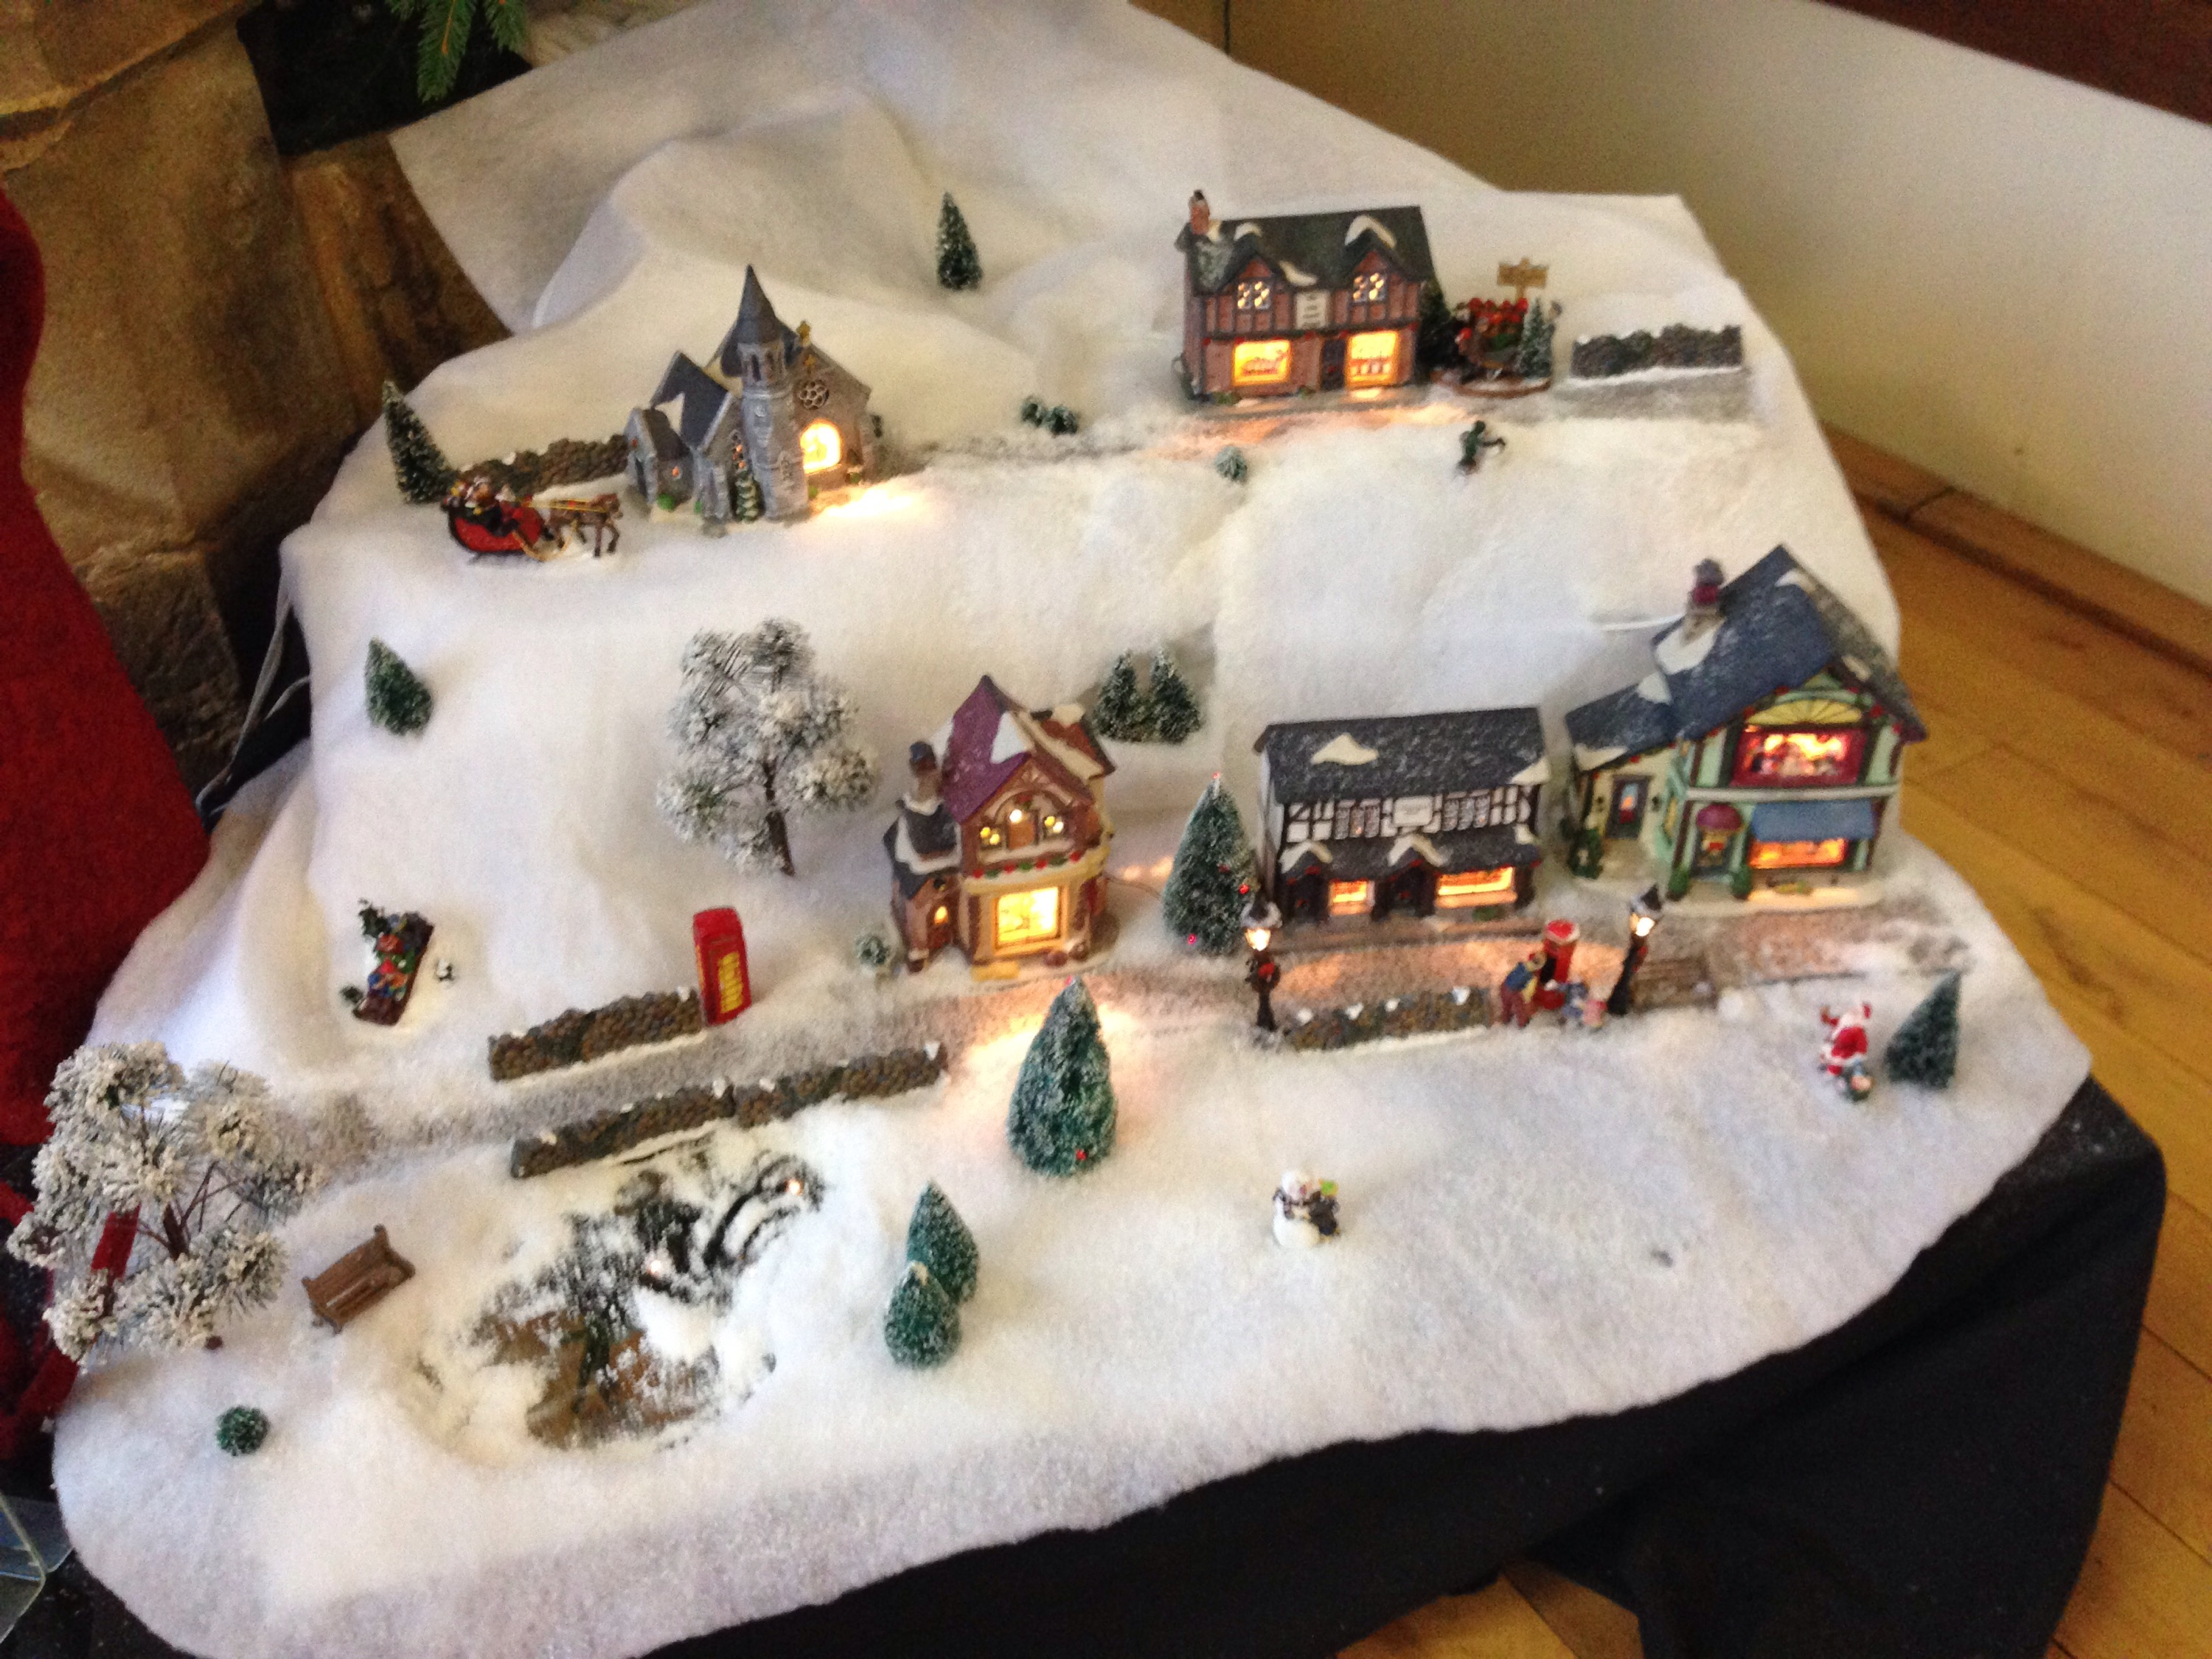 model village at st marys heritage centre for a show of the Snow Bear